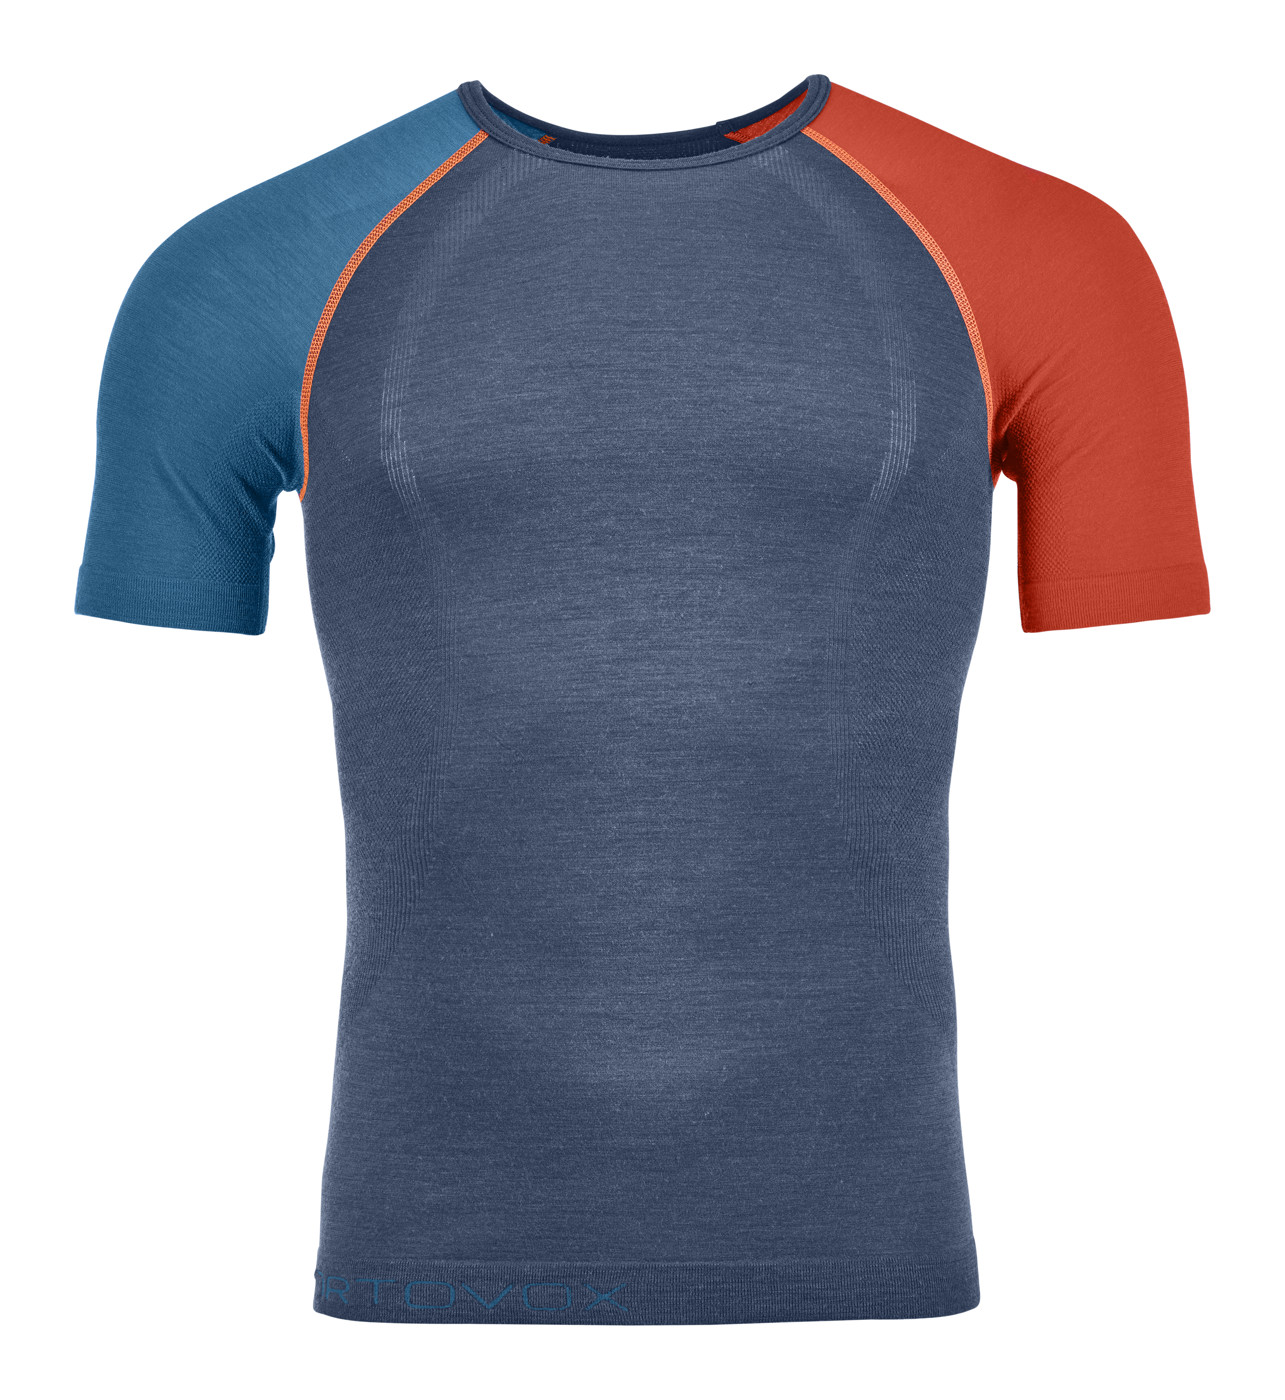 ORTOVOX 120 COMP LIGHT SHORT SLEEVE M - Herren